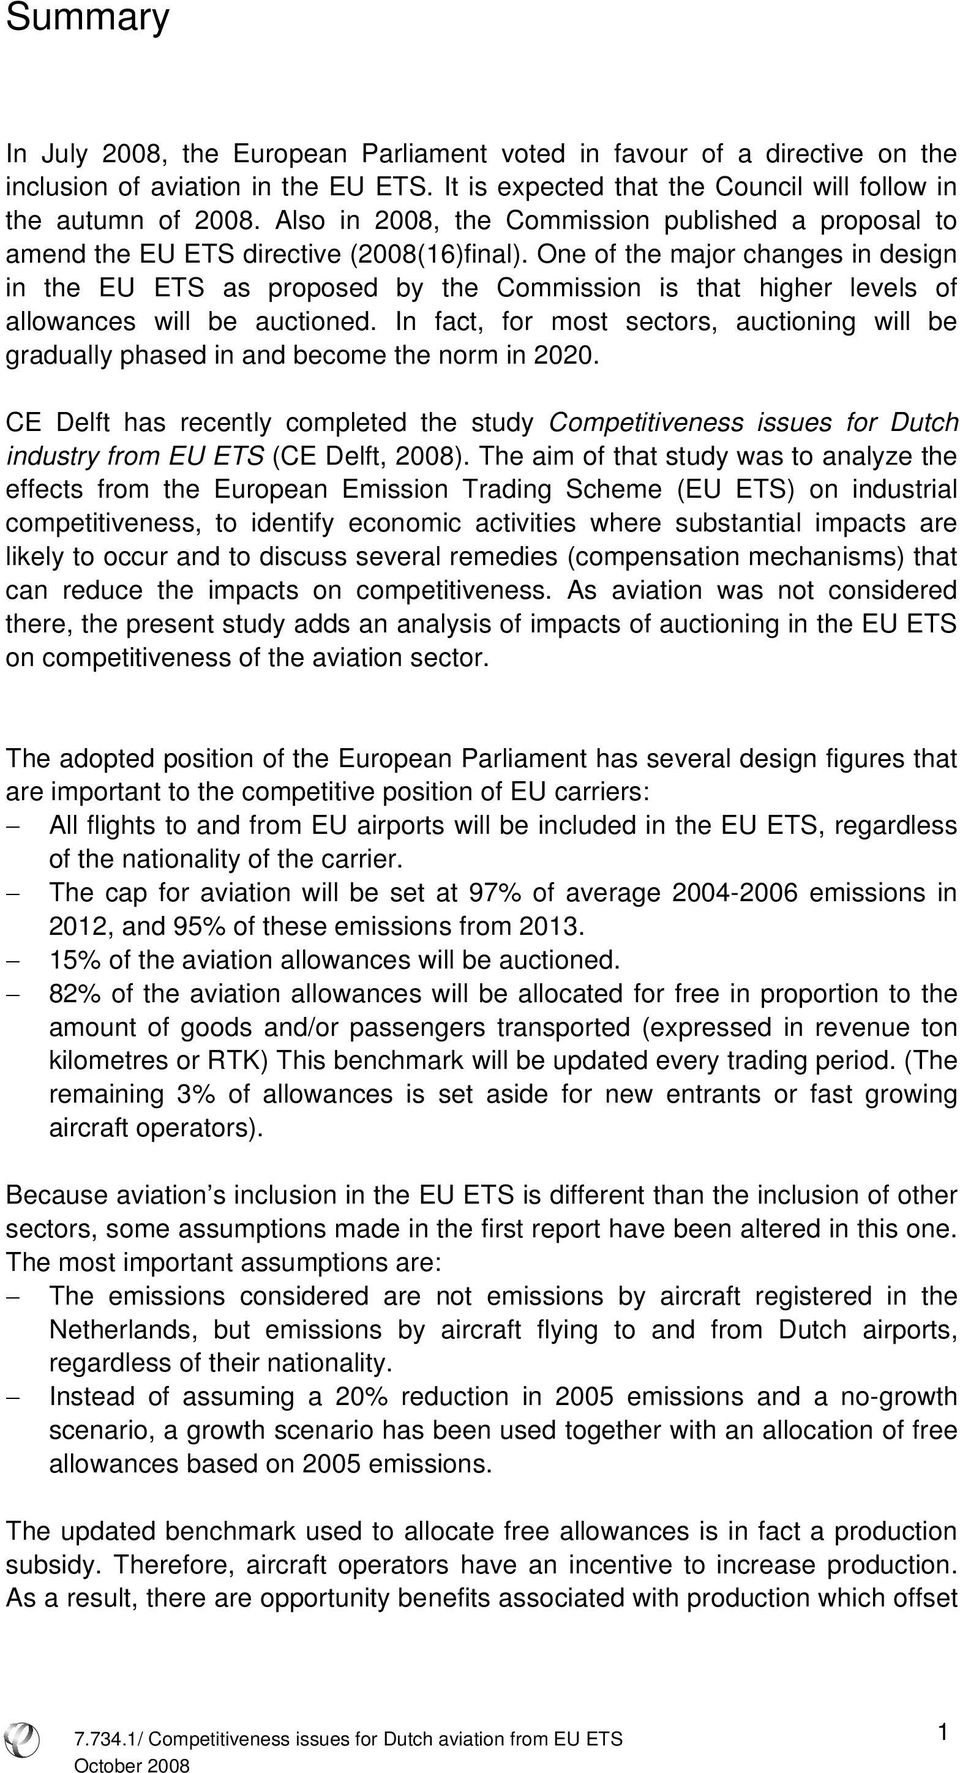 One of the major changes in design in the EU ETS as proposed by the Commission is that higher levels of allowances will be auctioned.